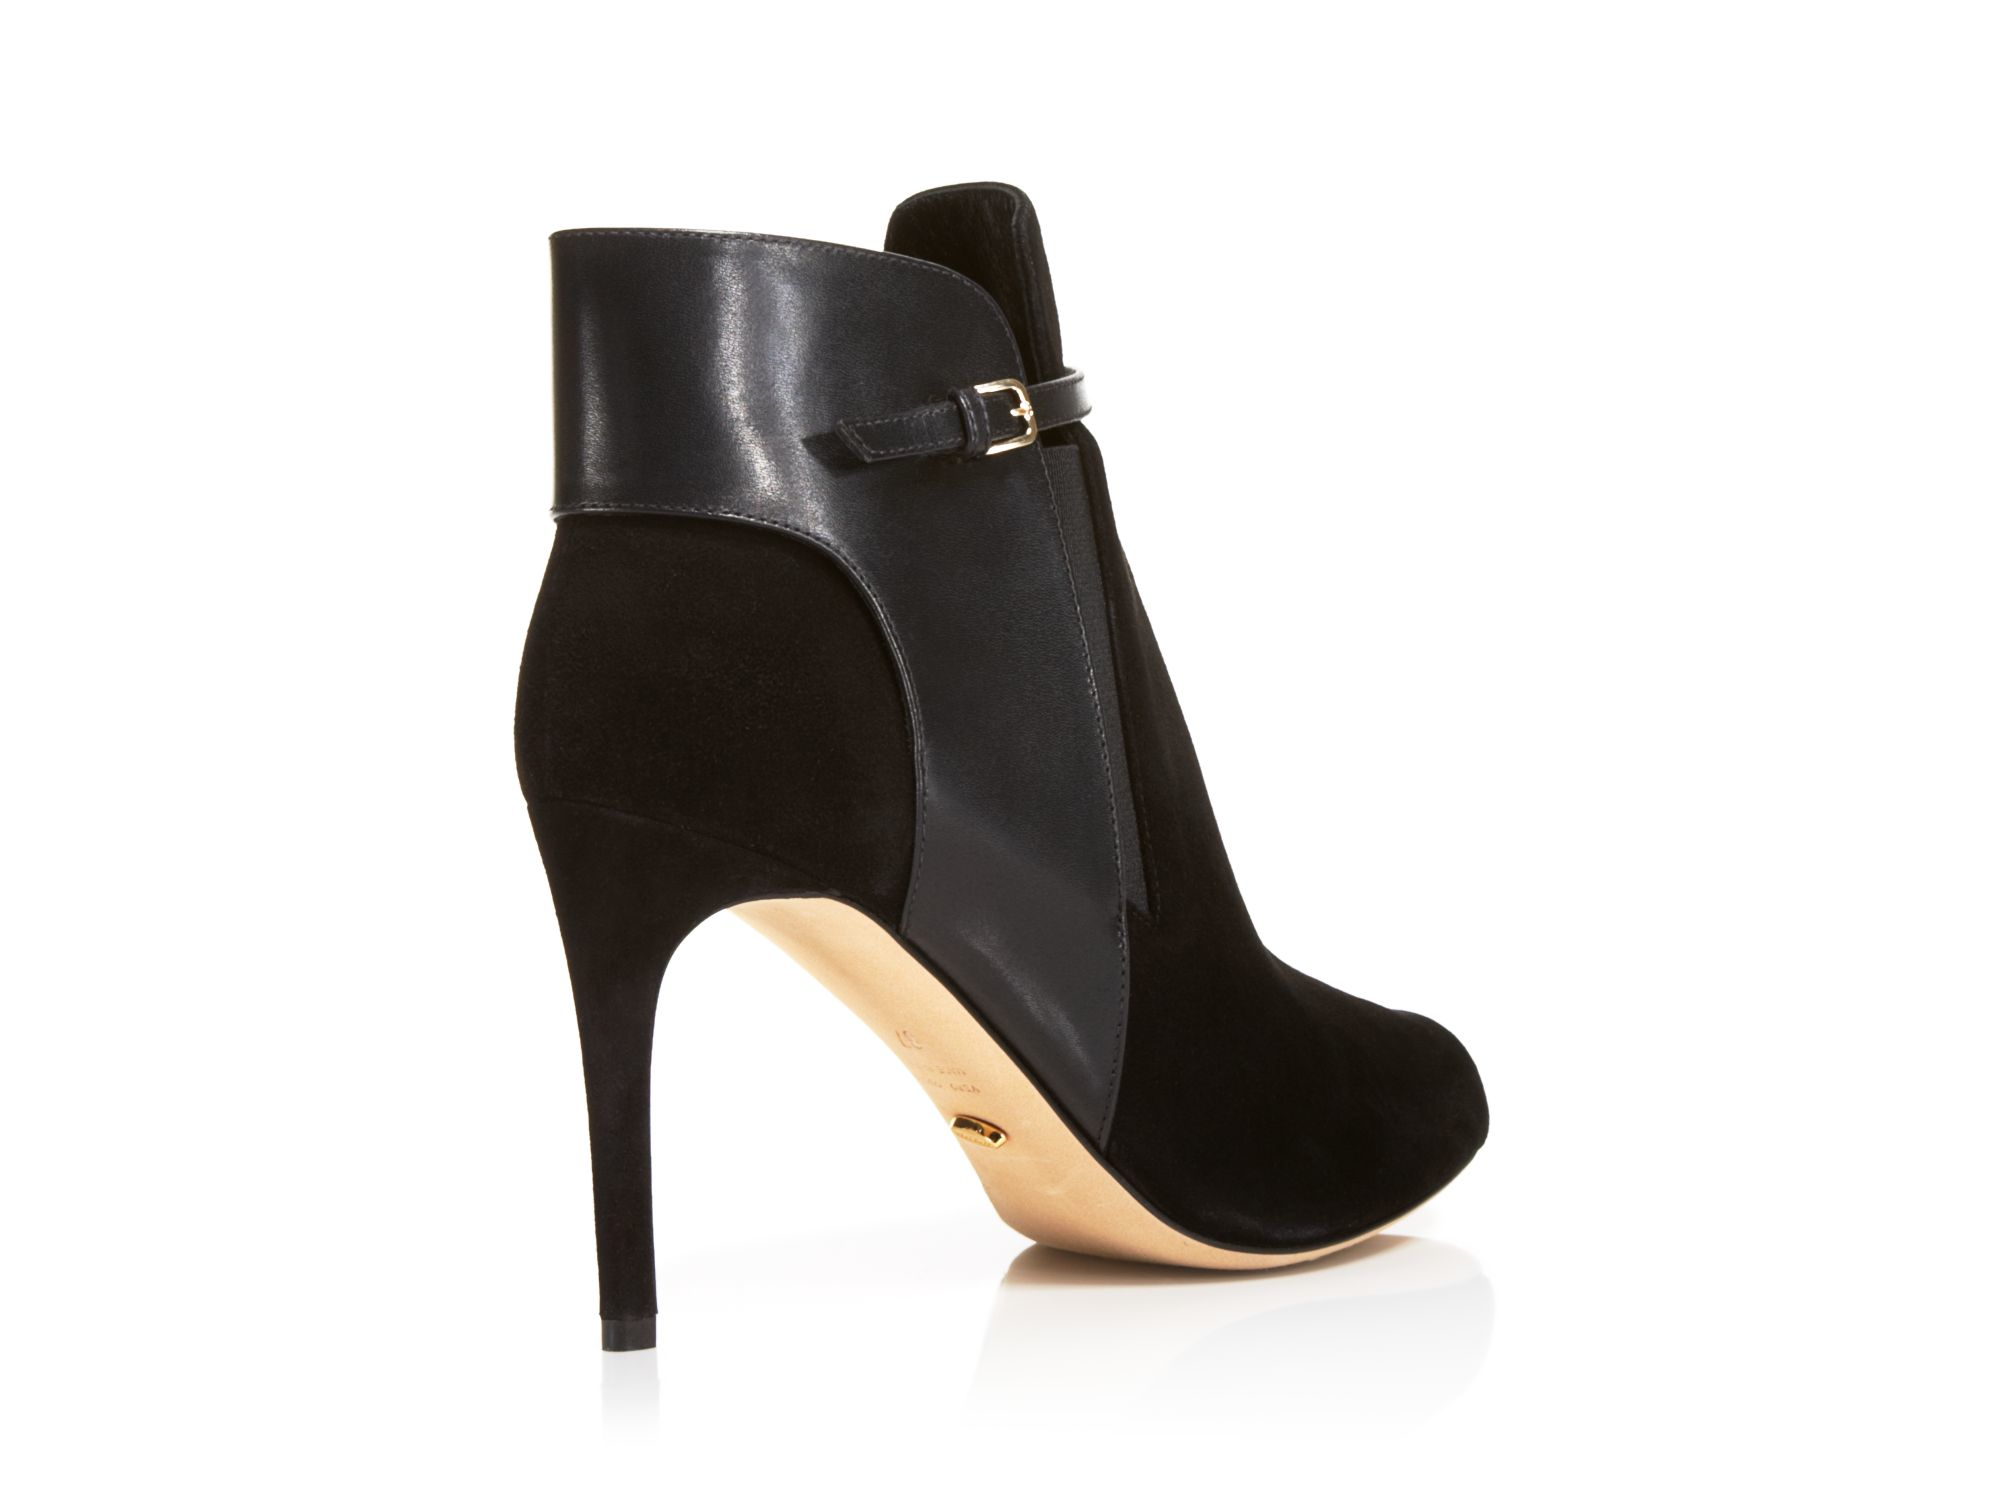 Sergio Rossi Leather Open Toe Boots y8GyGU